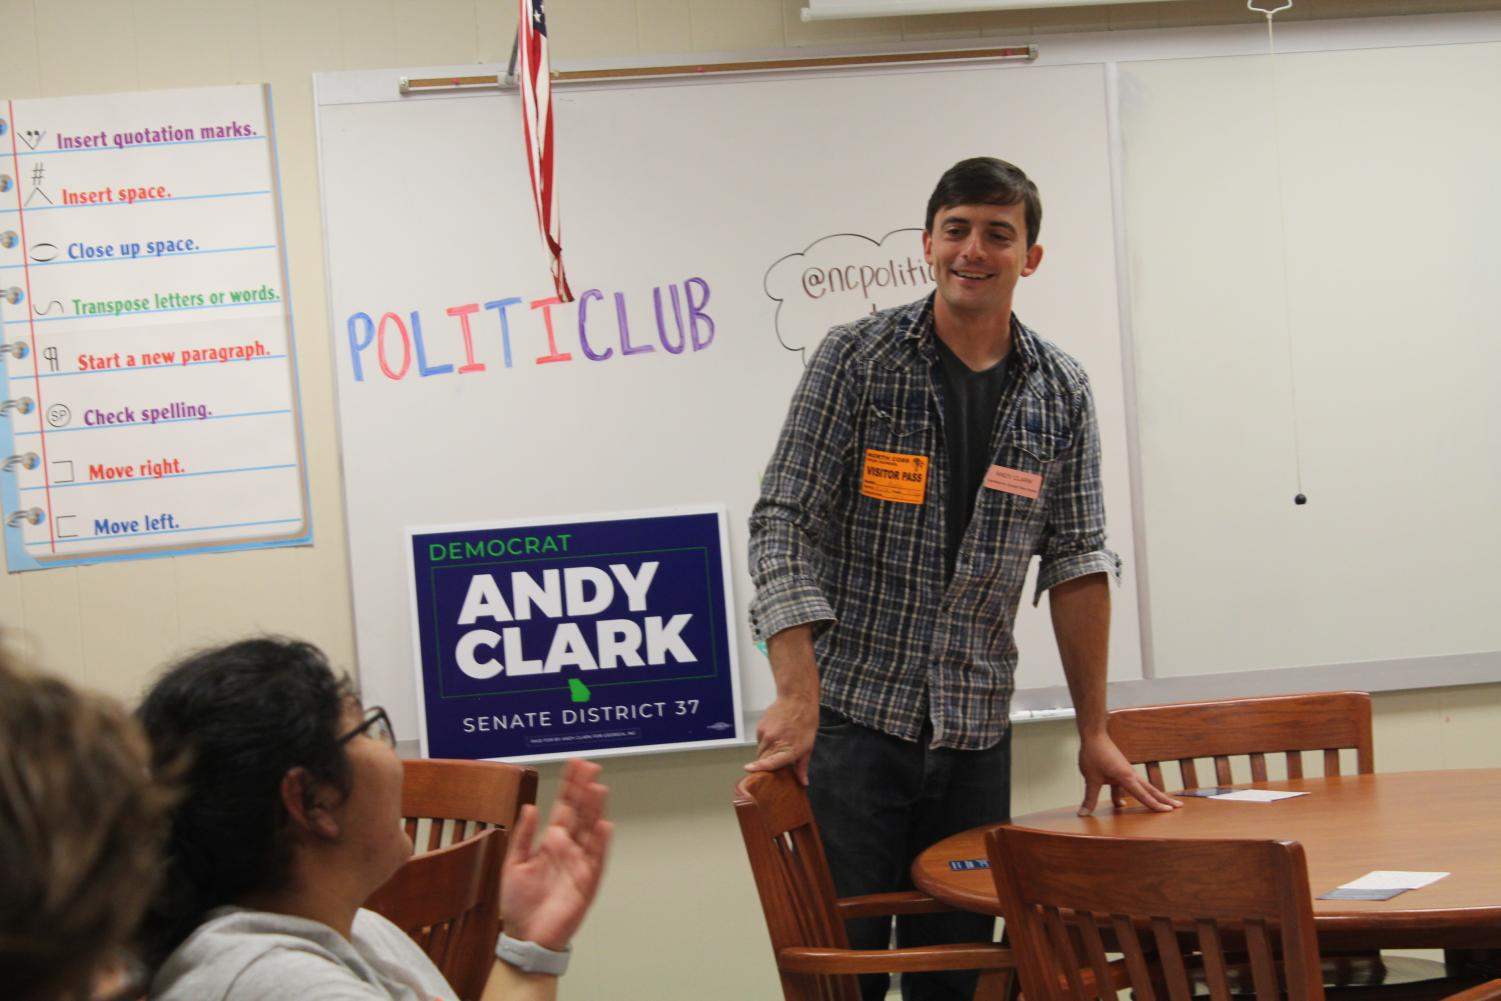 At the Politiclub meeting, Democrat Andy Clark, runner for Senate in District 37, chats with the NC students, engaging them in the conversation. The audience asks interesting questions to keep the discussion going as Clark introduces himself and goes over his campaign goals.